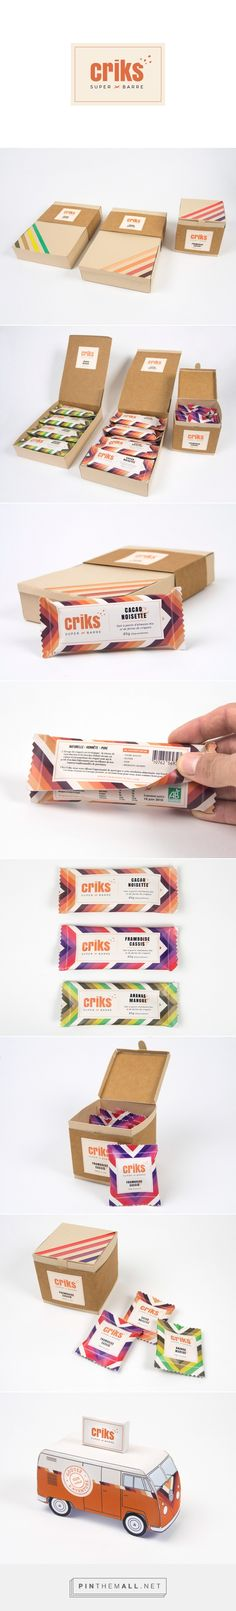 Branding, packaging and graphic design for Criks on Behance by Alex Celaire Aix-en-Provence, France curated by Packaging Diva PD.  Insect protein bar made with cricket flour, for an active and healthy life.